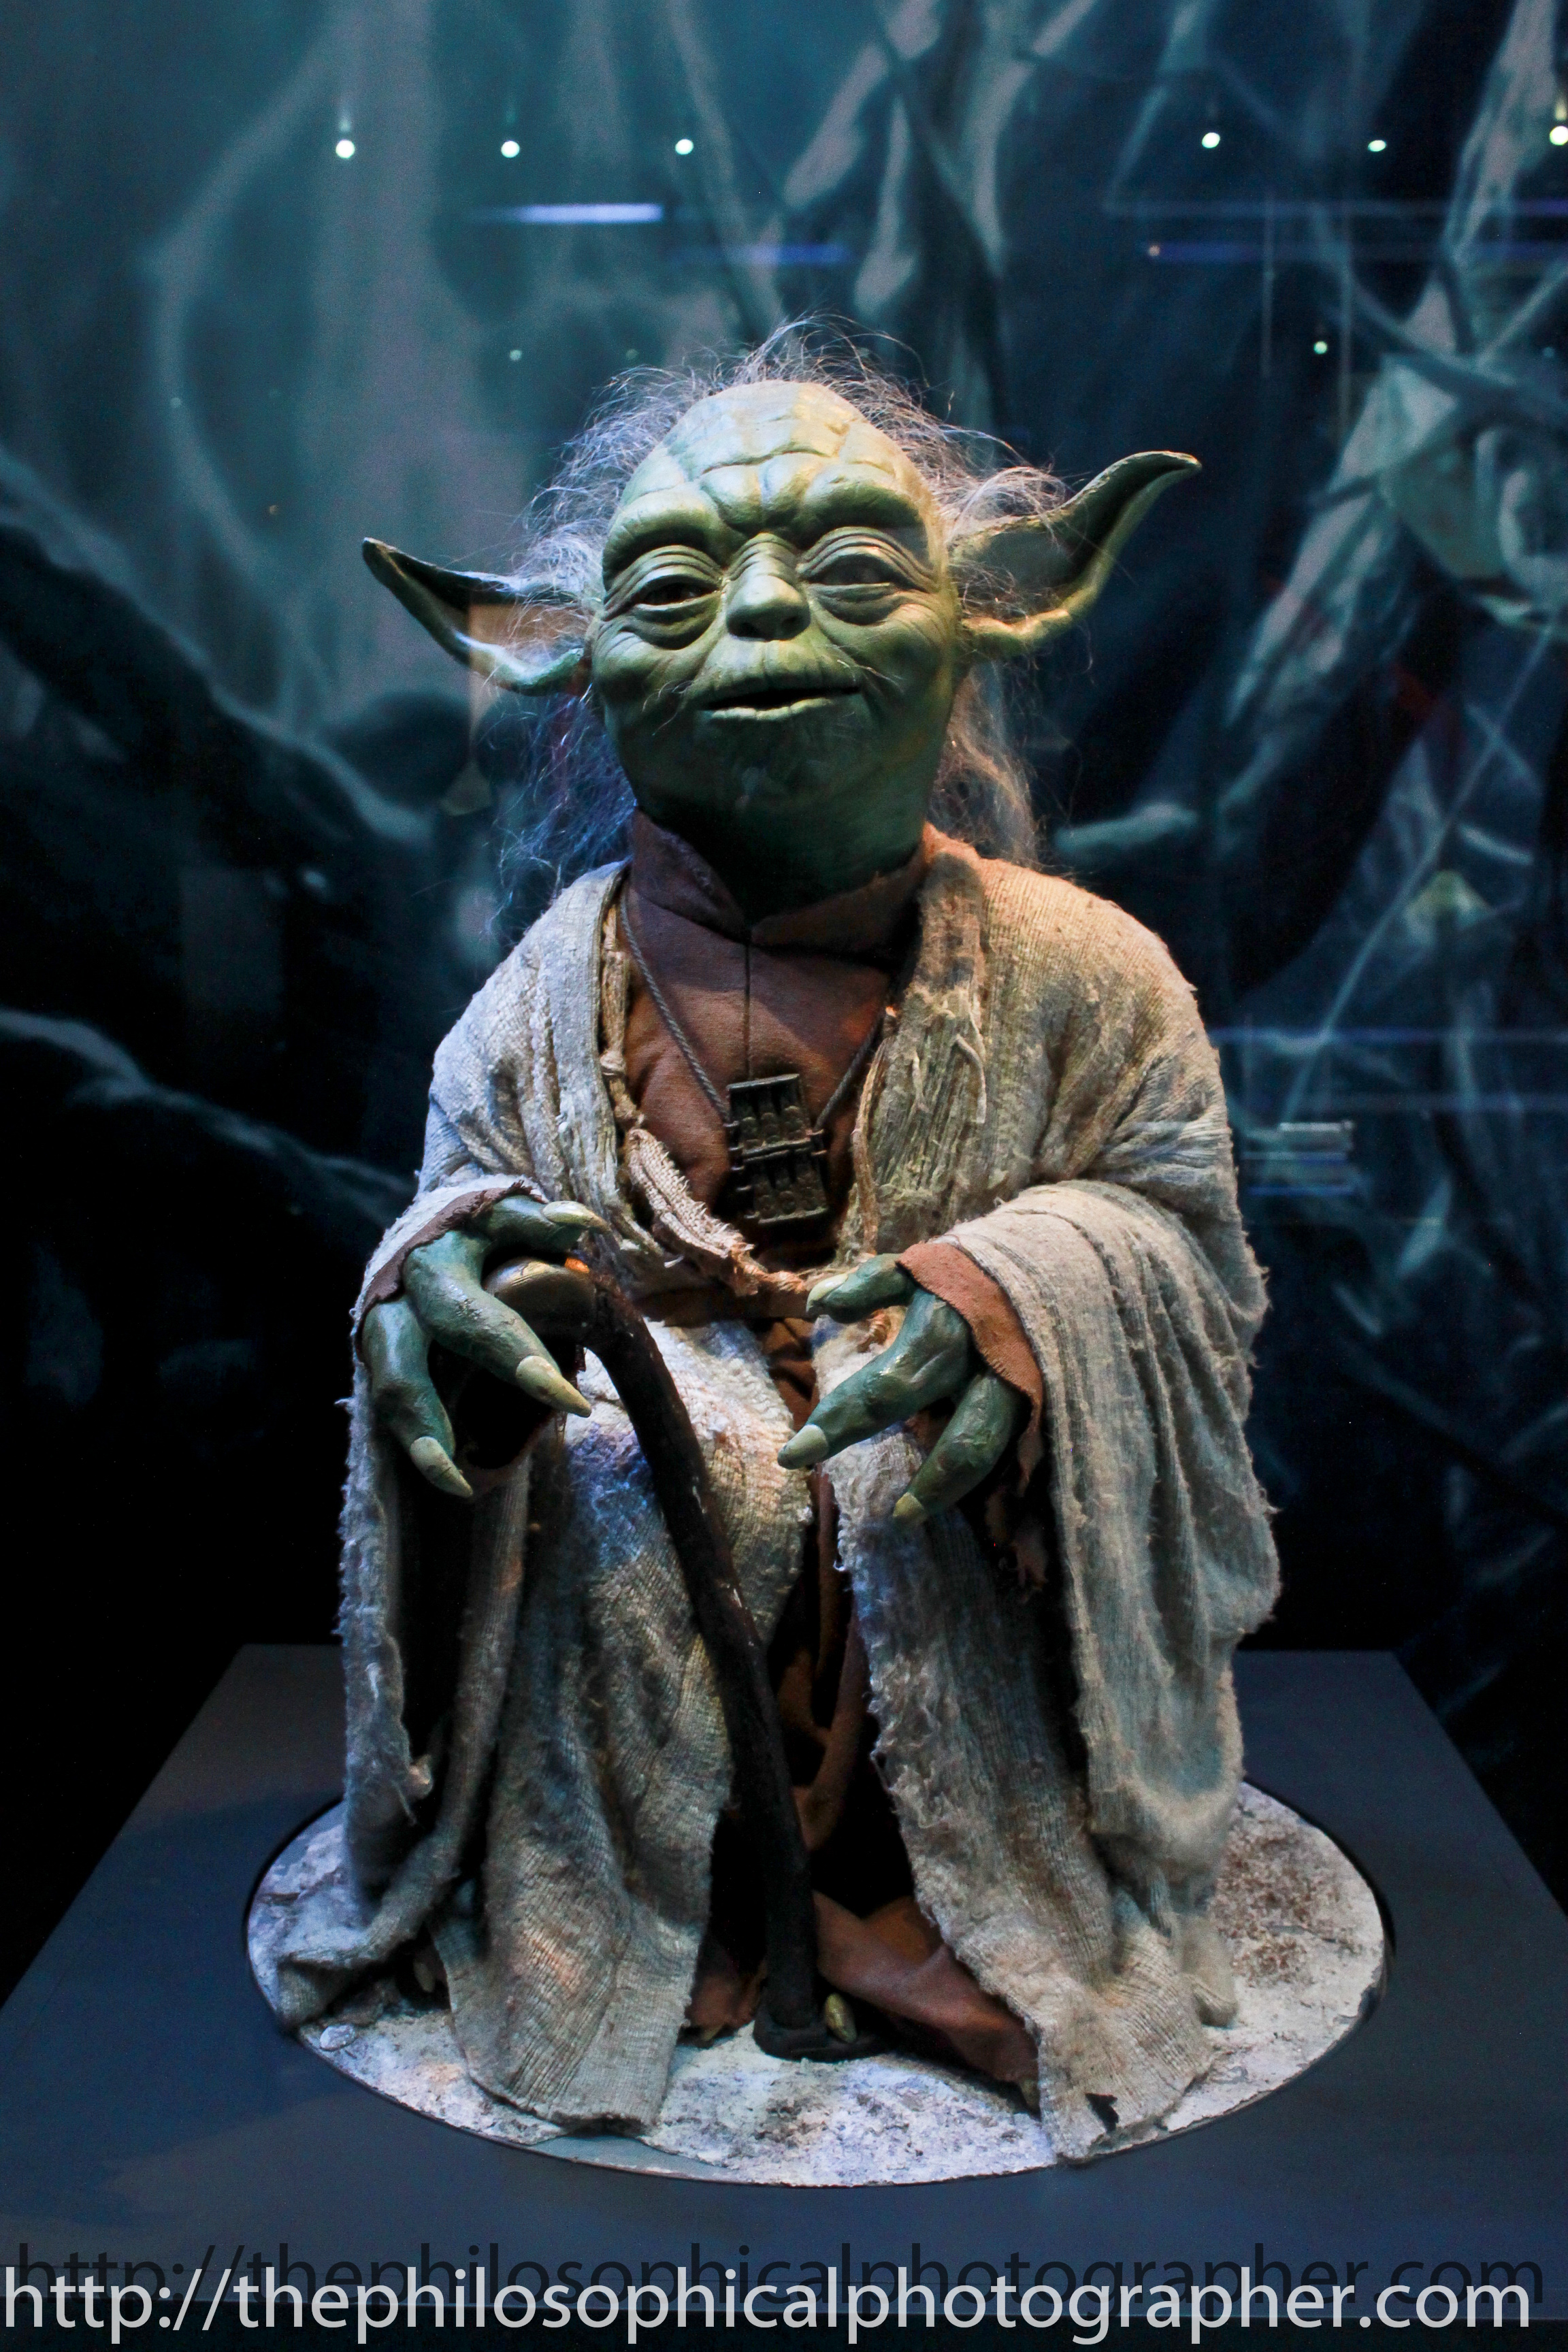 Yoda model used in the latest Star Wars movie